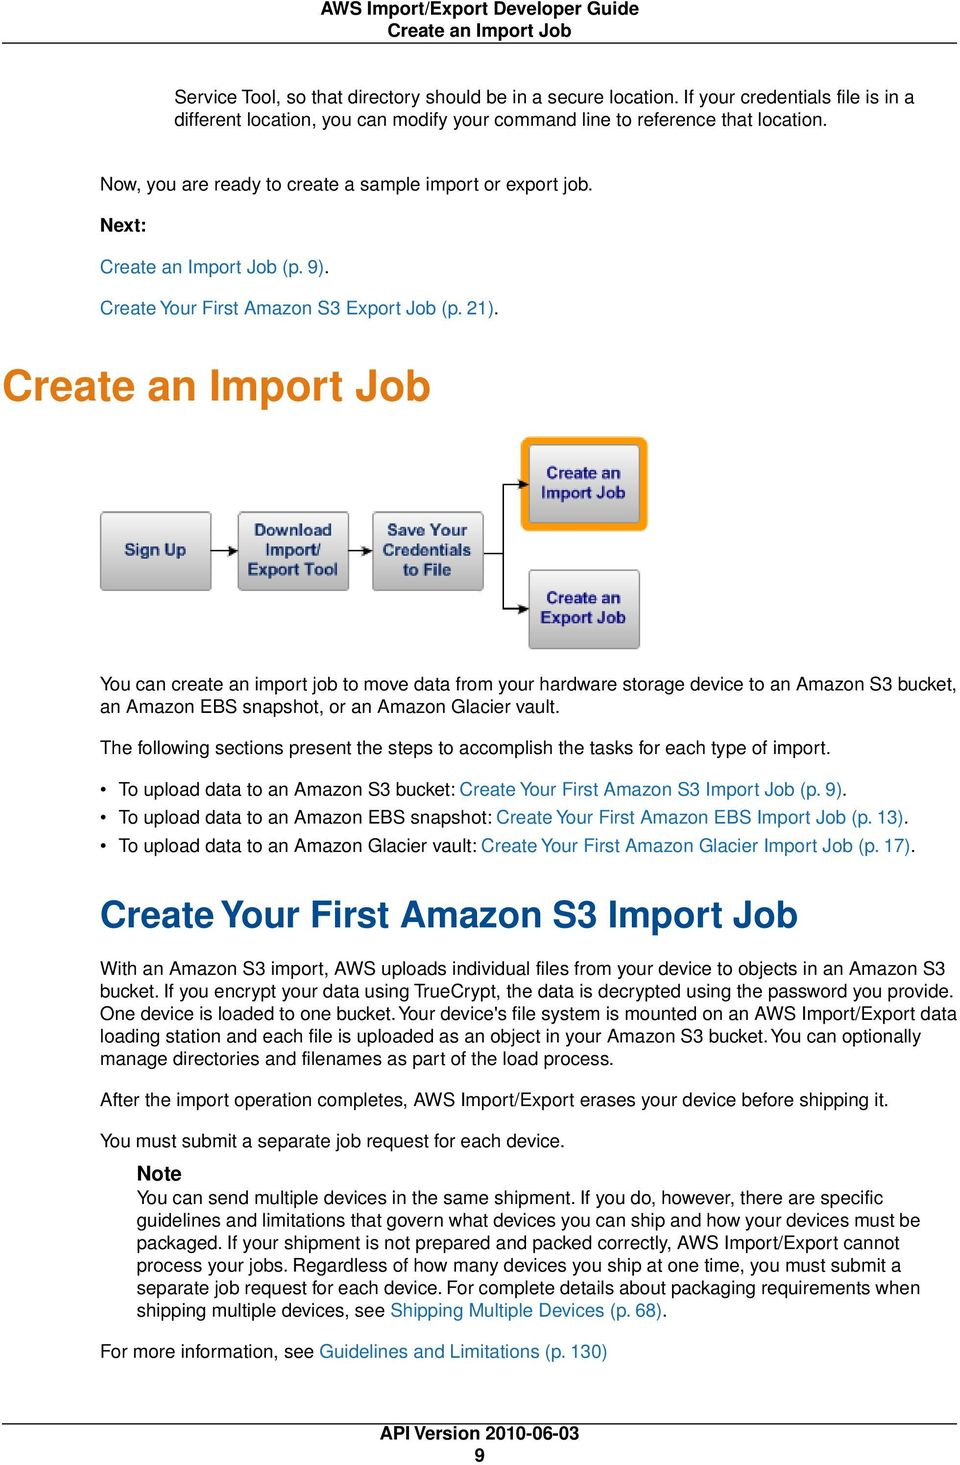 Create an Import Job You can create an import job to move data from your hardware storage device to an Amazon S3 bucket, an Amazon EBS snapshot, or an Amazon Glacier vault.